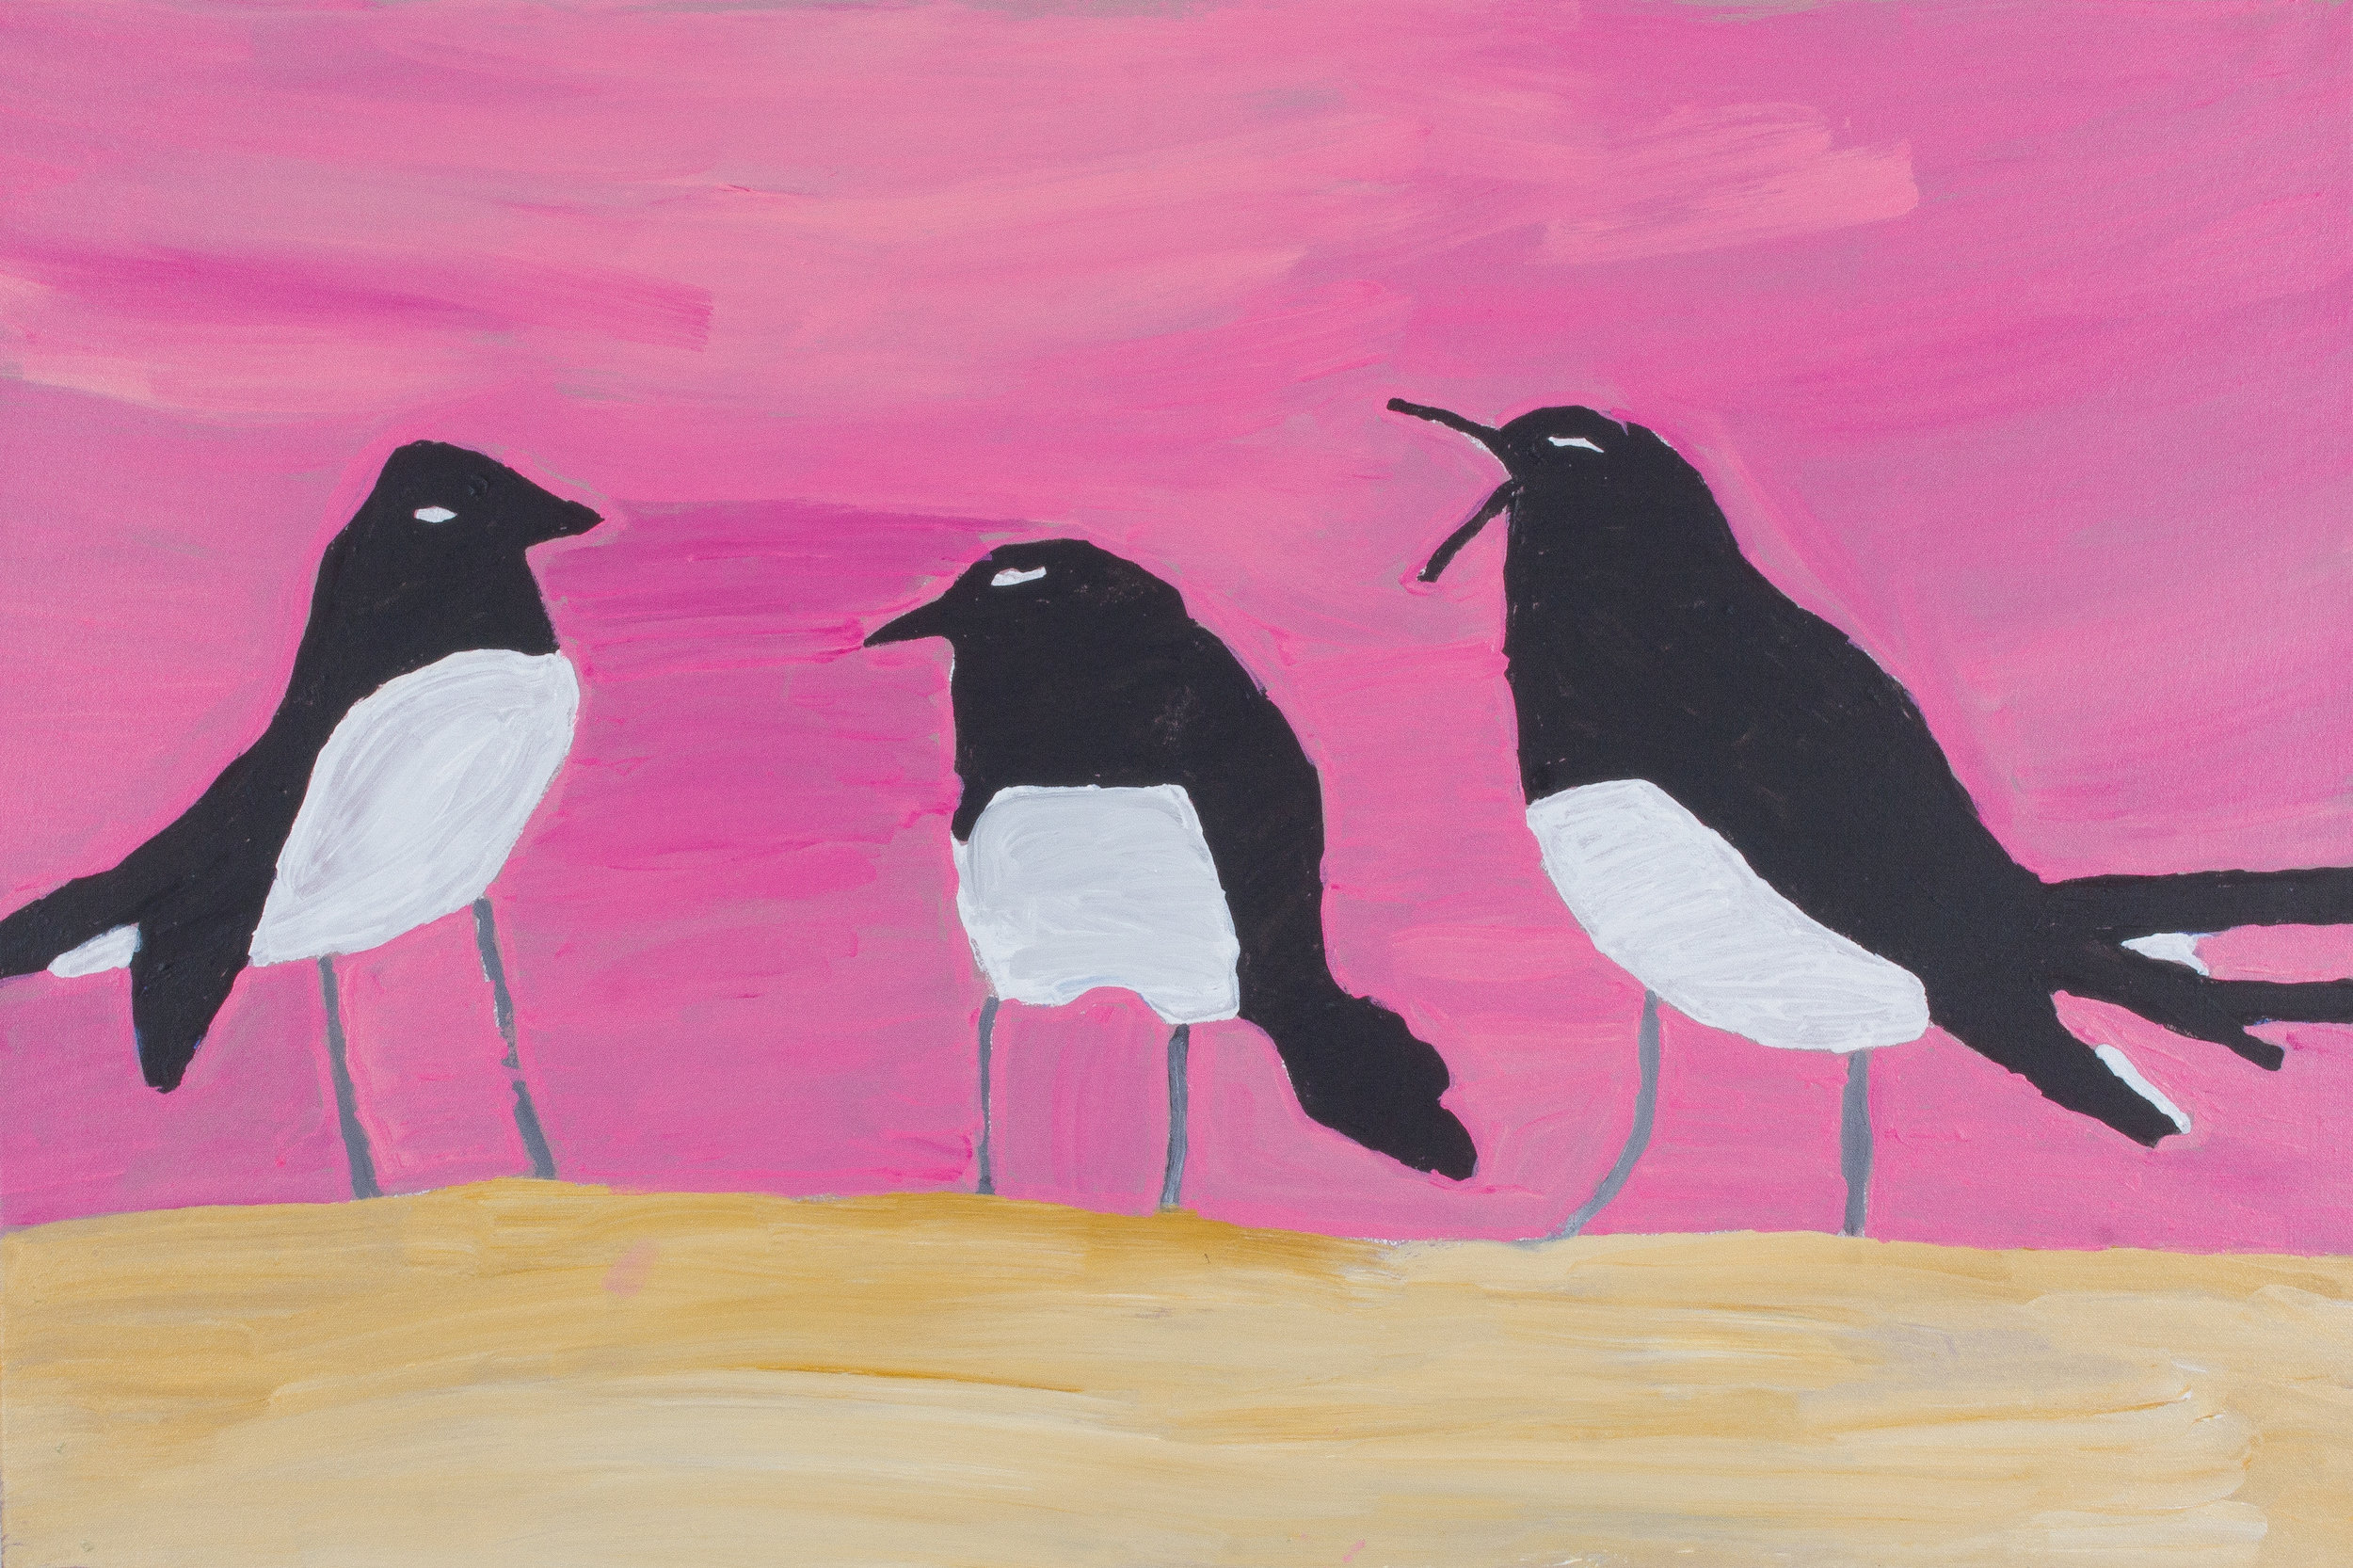 "Nyangulya Katie Nalgood  Willy Wagtail  24 x 36"" (61 x 91 cm) acrylic on linen Spinifex Hills Artists Catalog #18-481  SOLD"